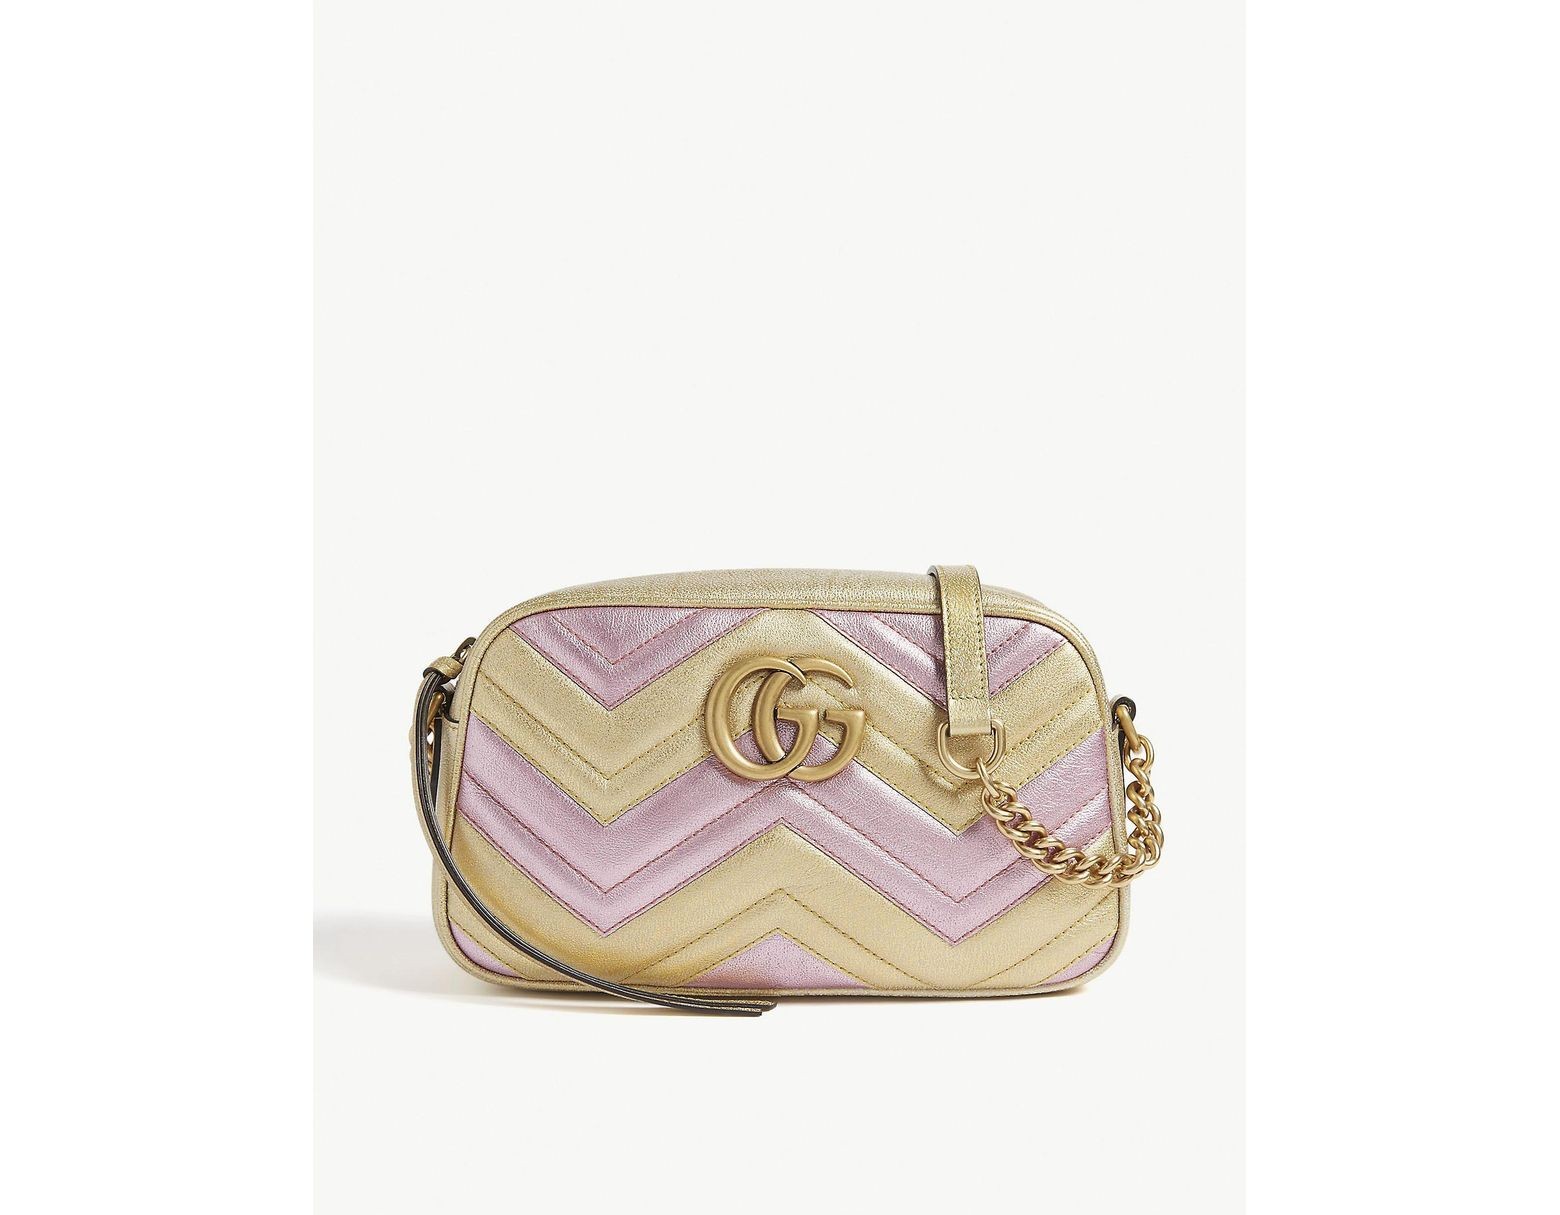 aa806eac18da Gucci Women's Gold And Pink Zigzag GG Marmont Metallic Quilted Leather  Shoulder Bag - Lyst